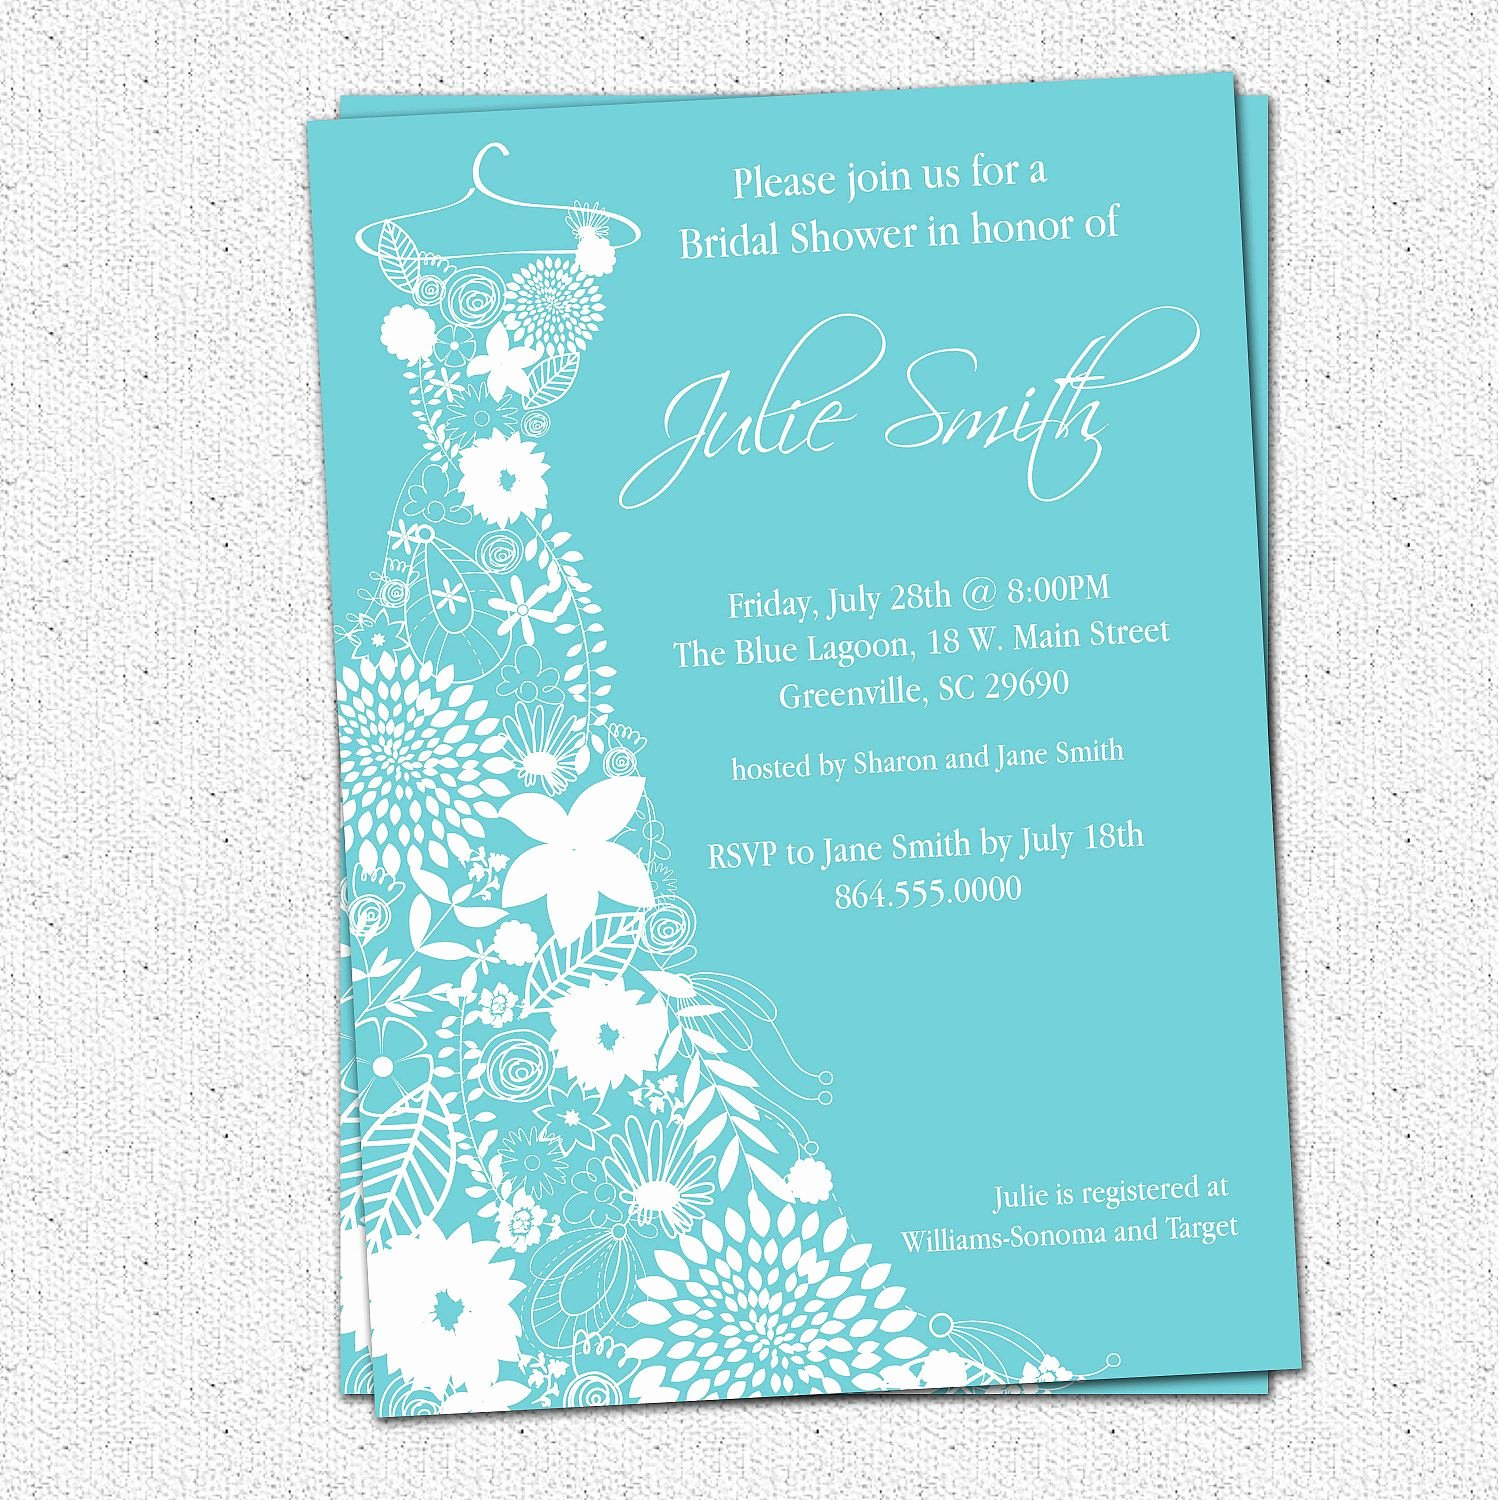 Wedding Shower Invitations Template Inspirational Bridal Shower Invitation Bridal Shower Invitations